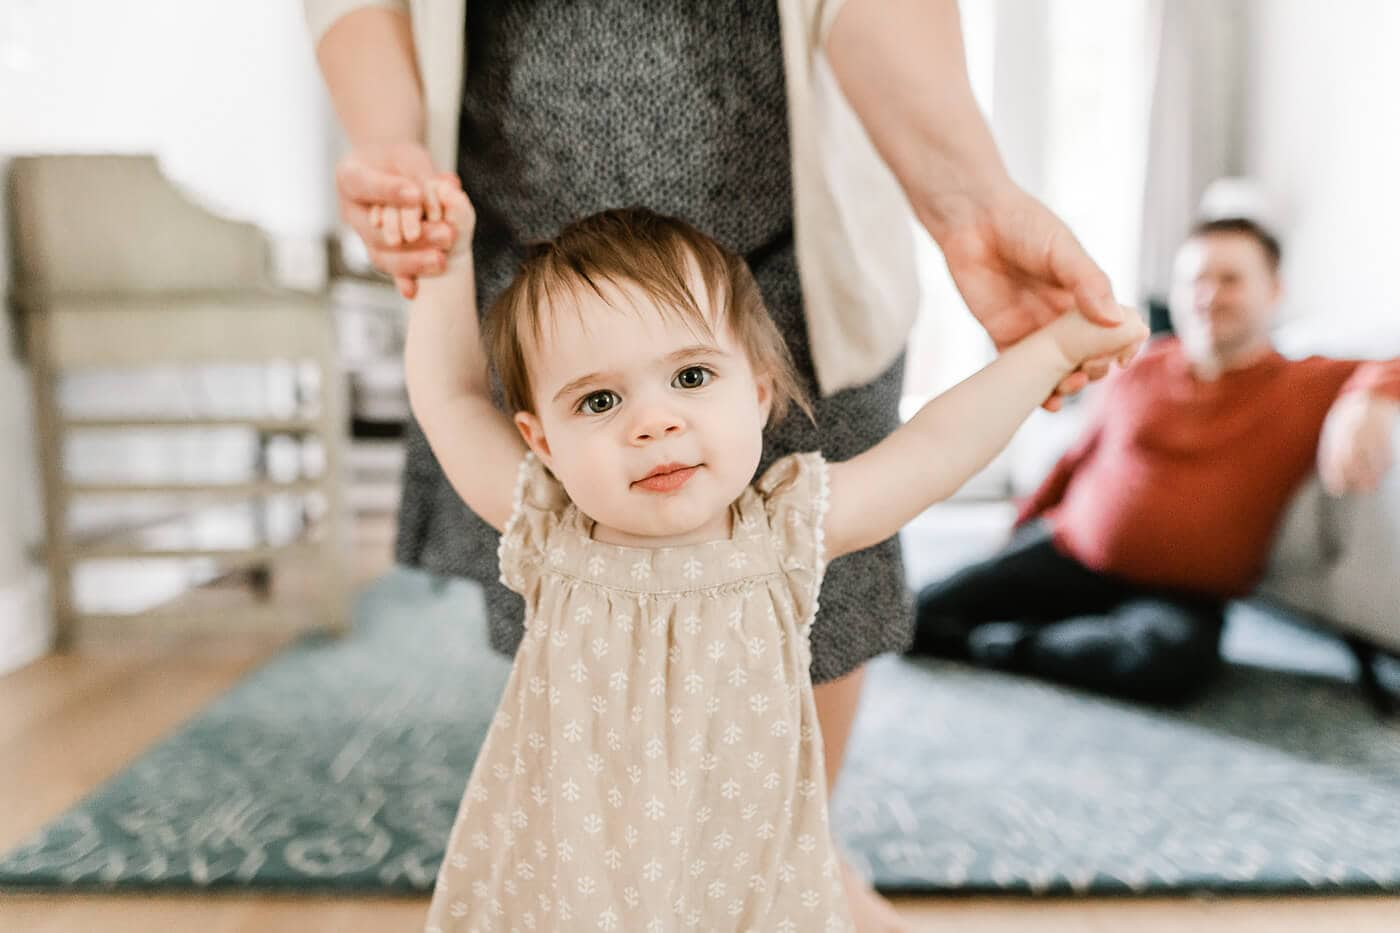 Baby girl learning to walk holding mom's hands